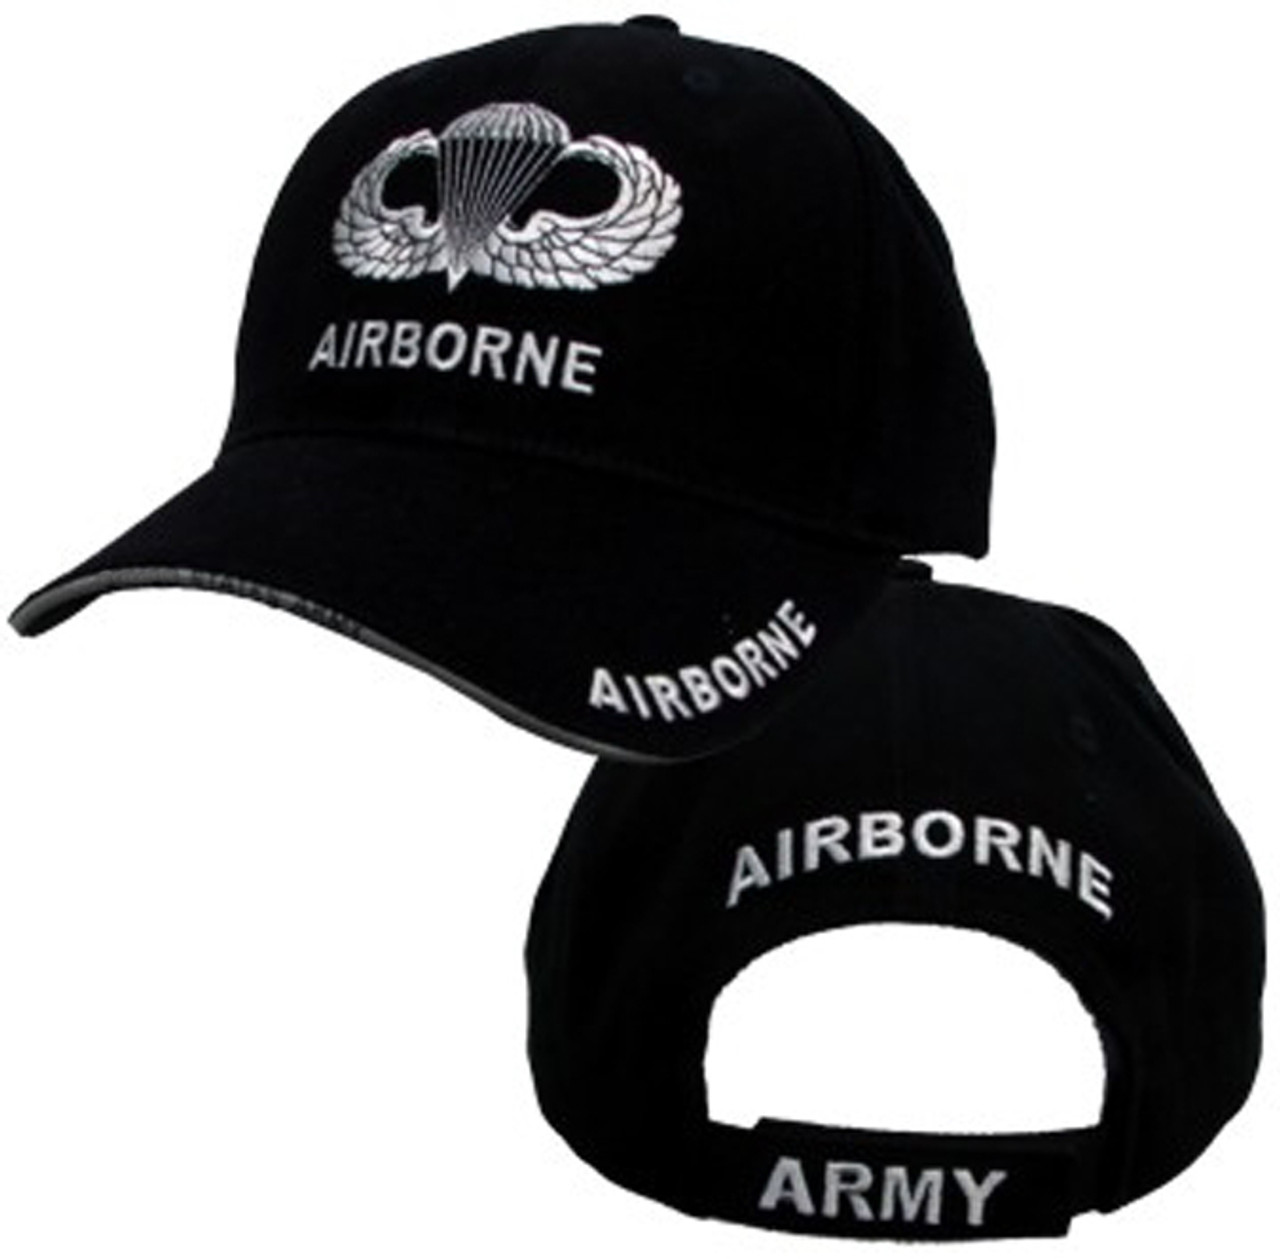 82nd Airborne Hat With Wings - U.S. Army Black With Jump Wings Baseball Cap  Hat a9d710dd6ef